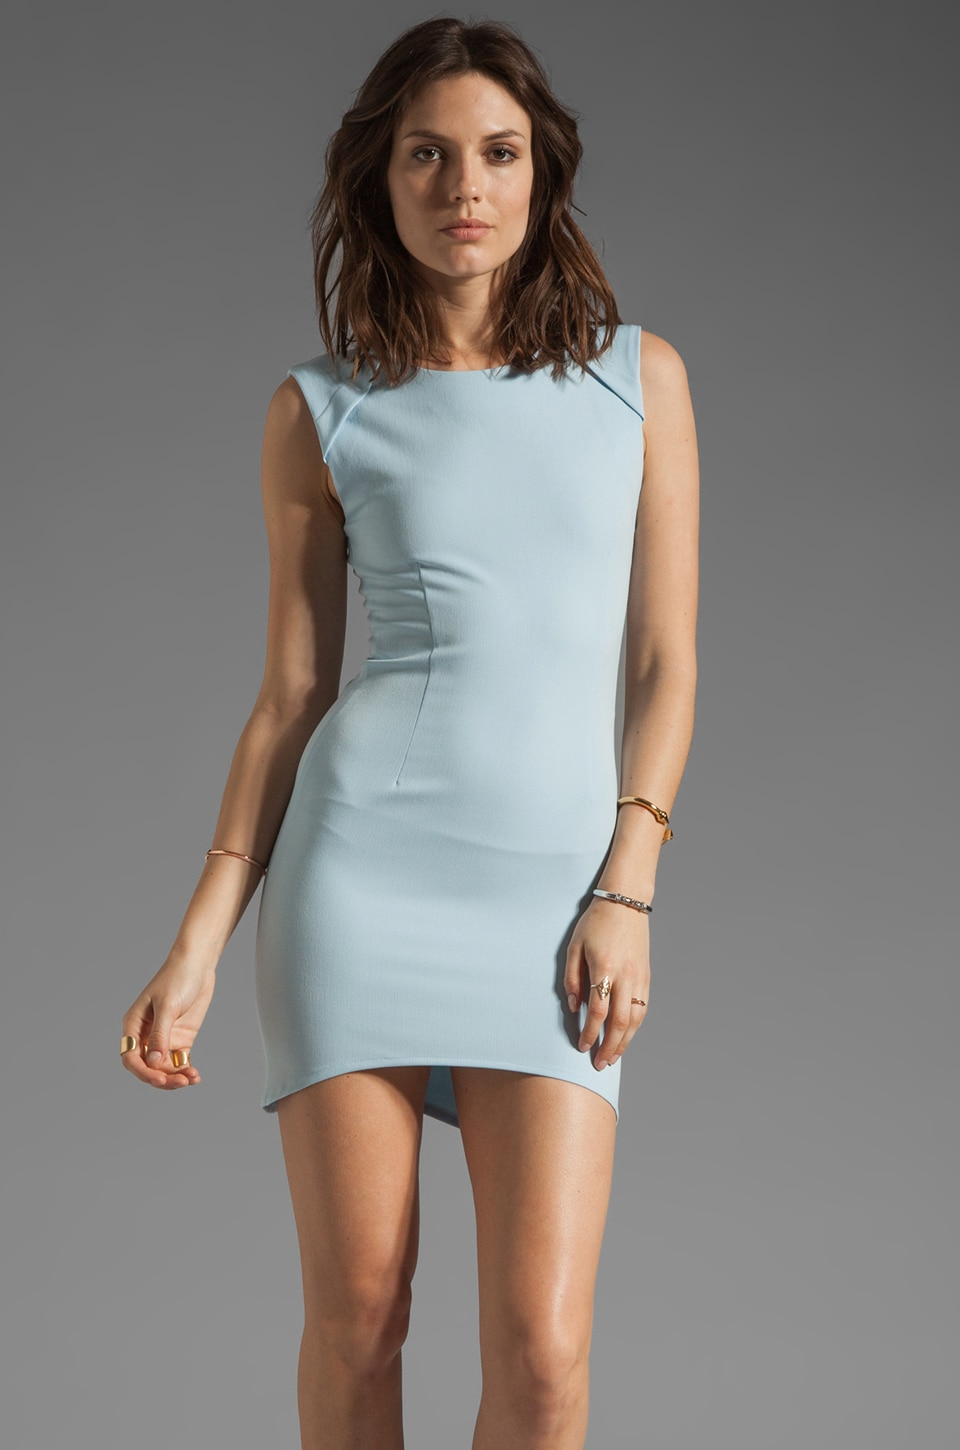 Shona Joy Right of Passage Body Con Dress in Powder Blue